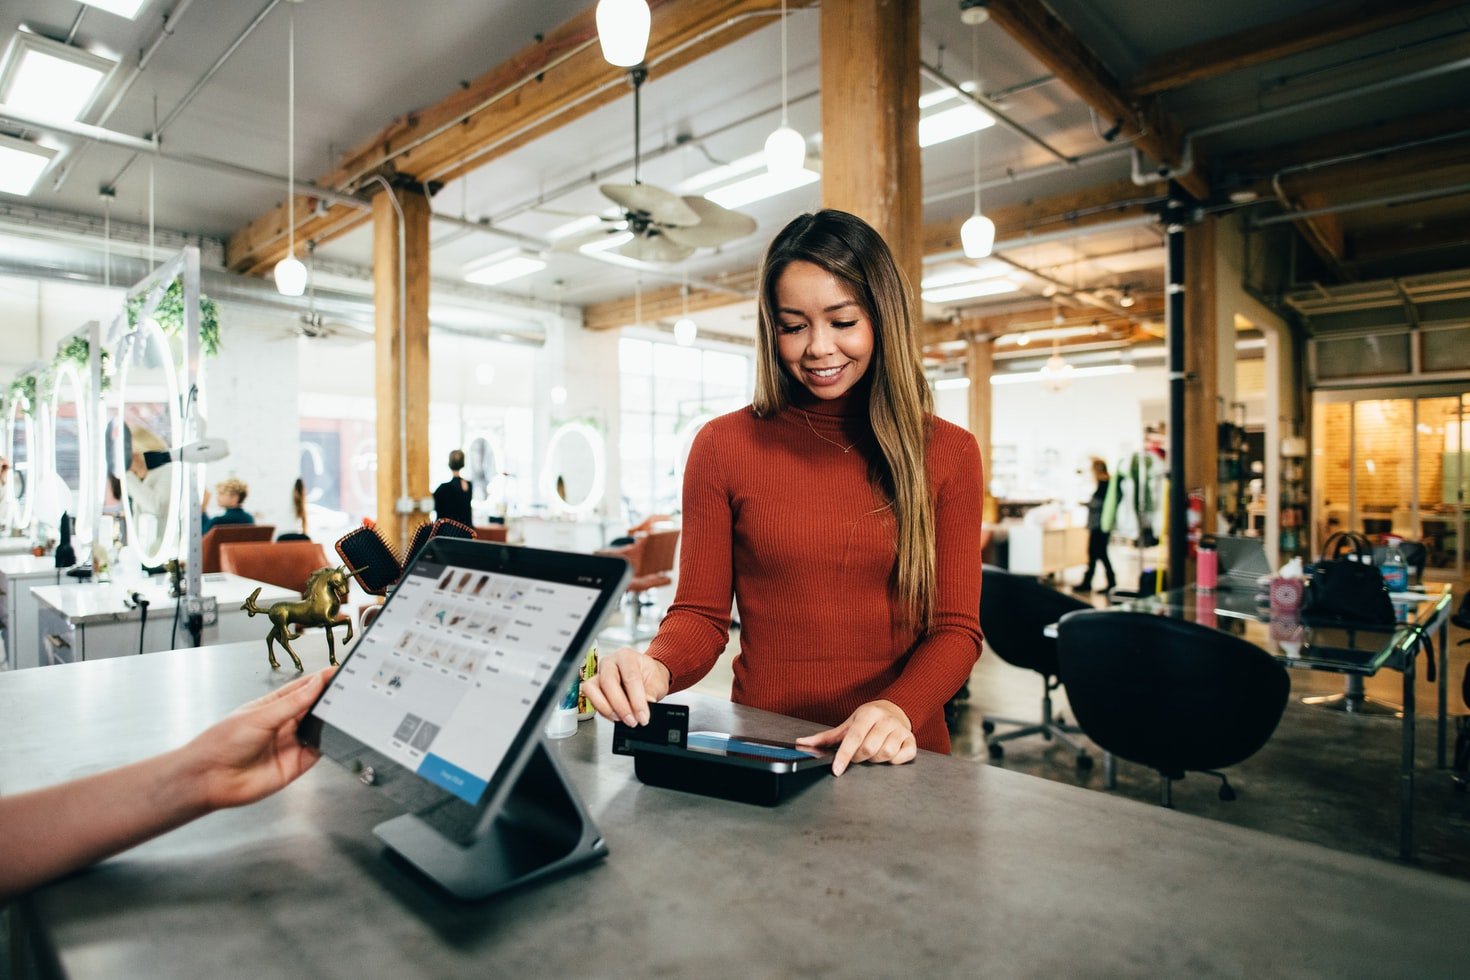 6 Basic Automation Projects to Improved Customer Experiences